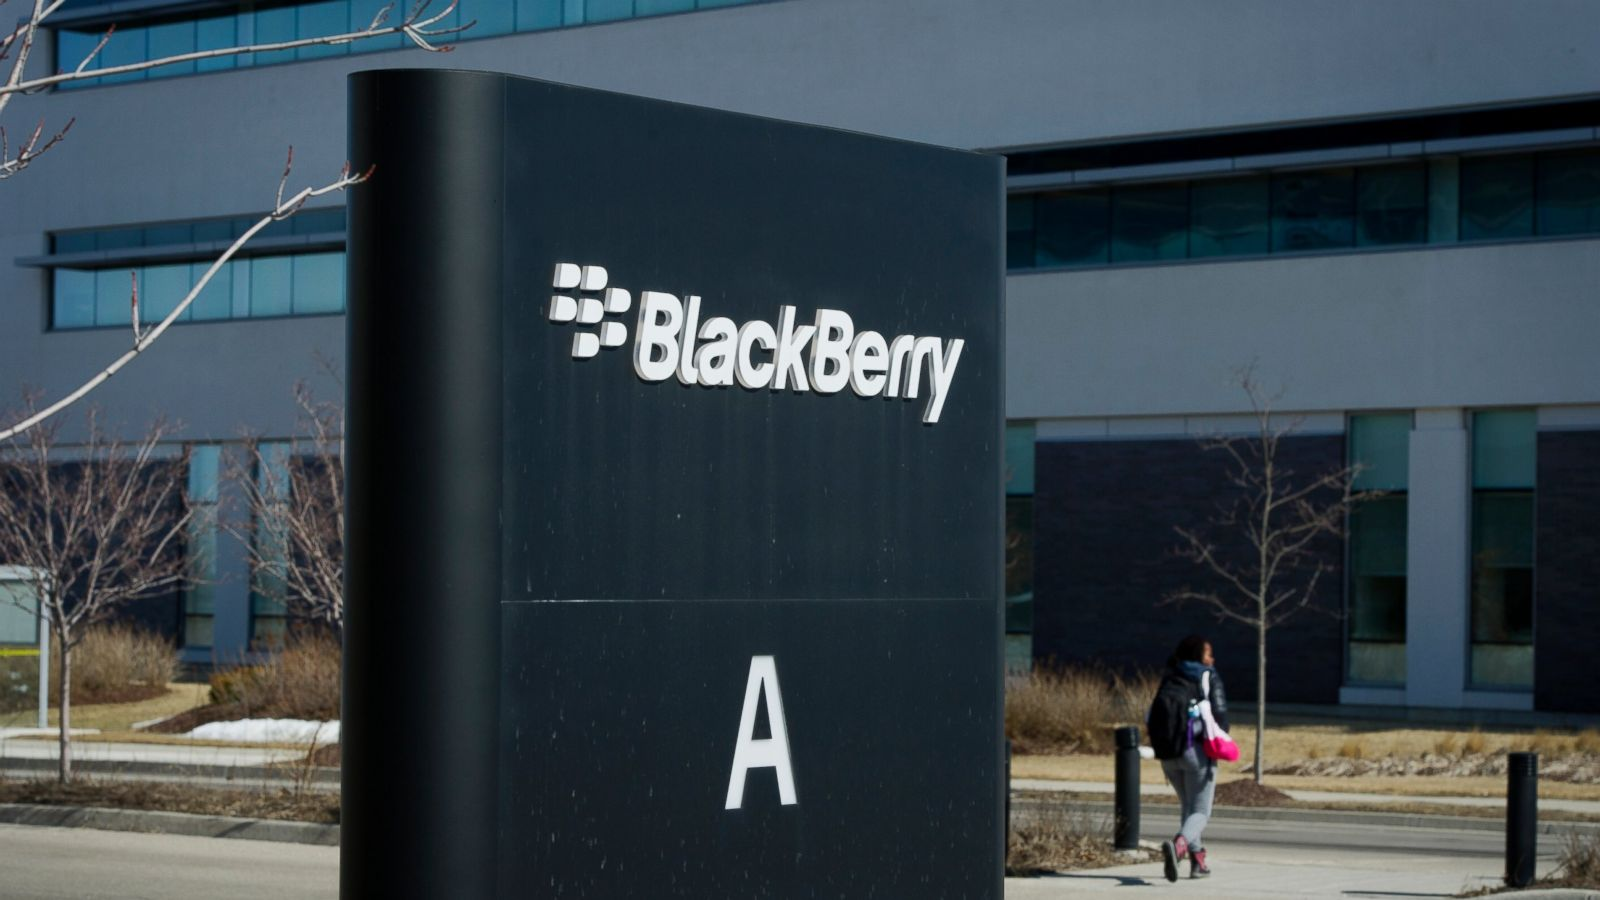 BlackBerry shares have soared. The company will start working with Amazon